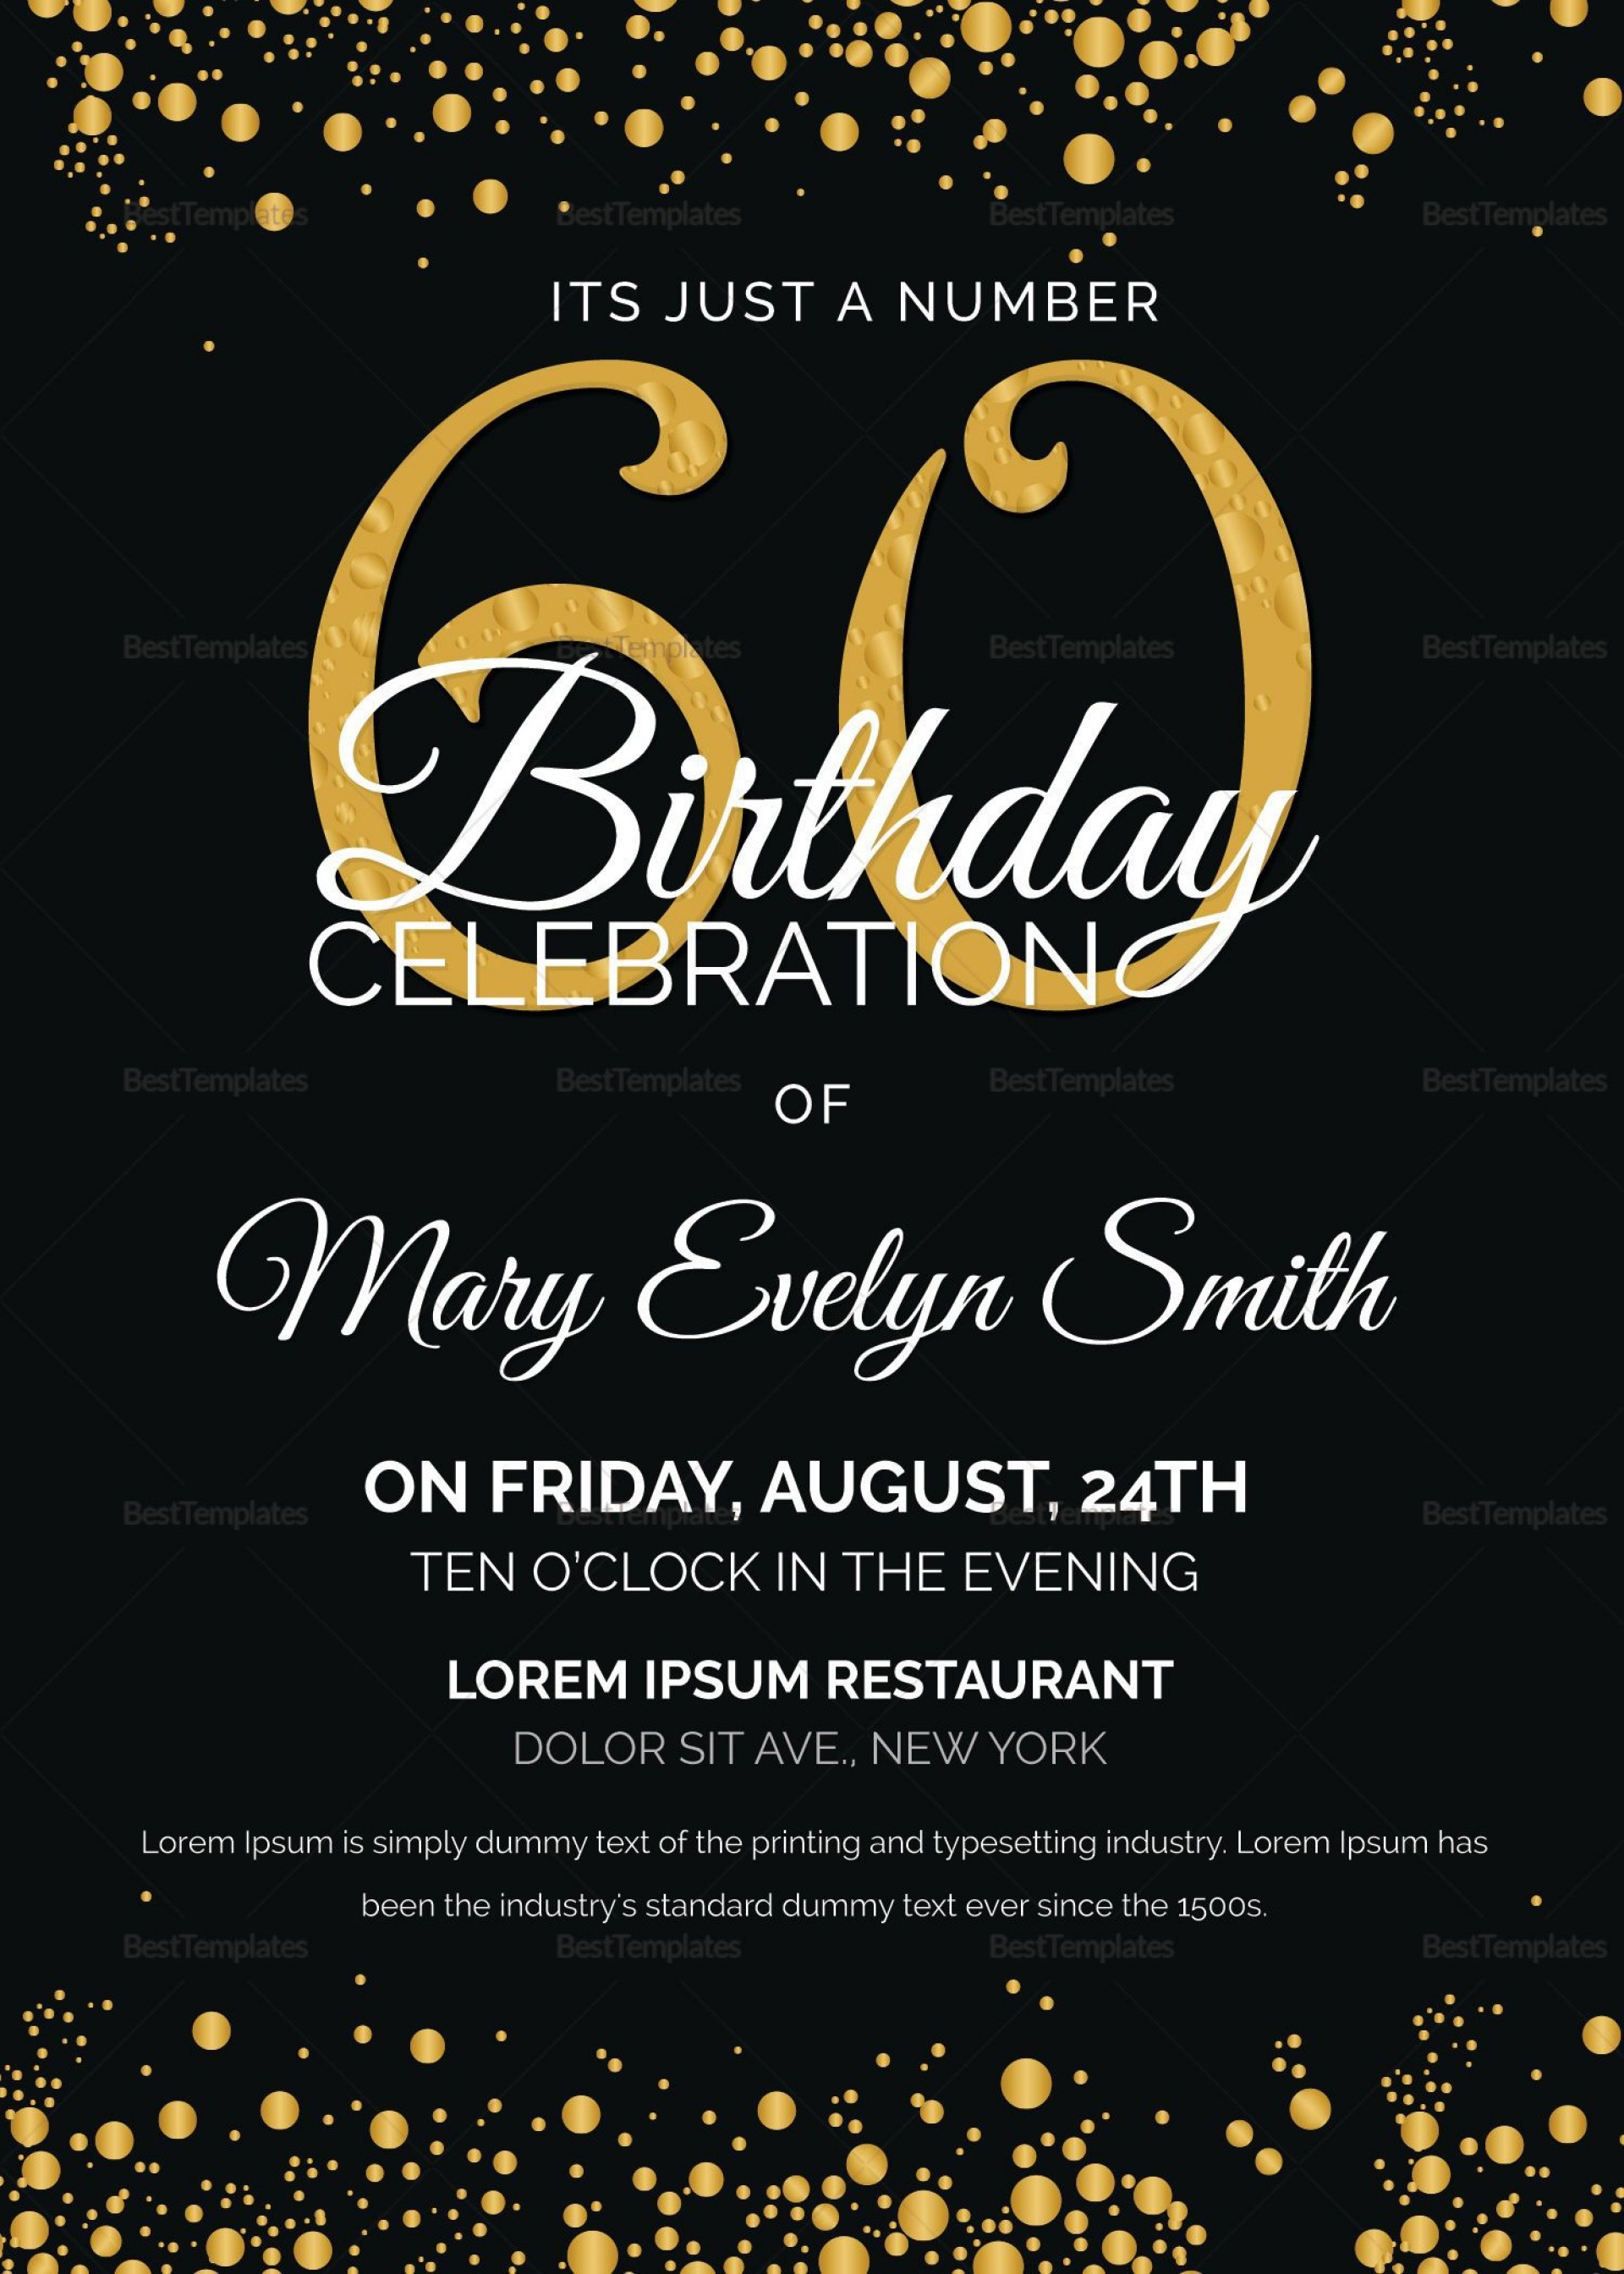 006 Impressive 60th Birthday Invitation Template Example  Card Free Download1920